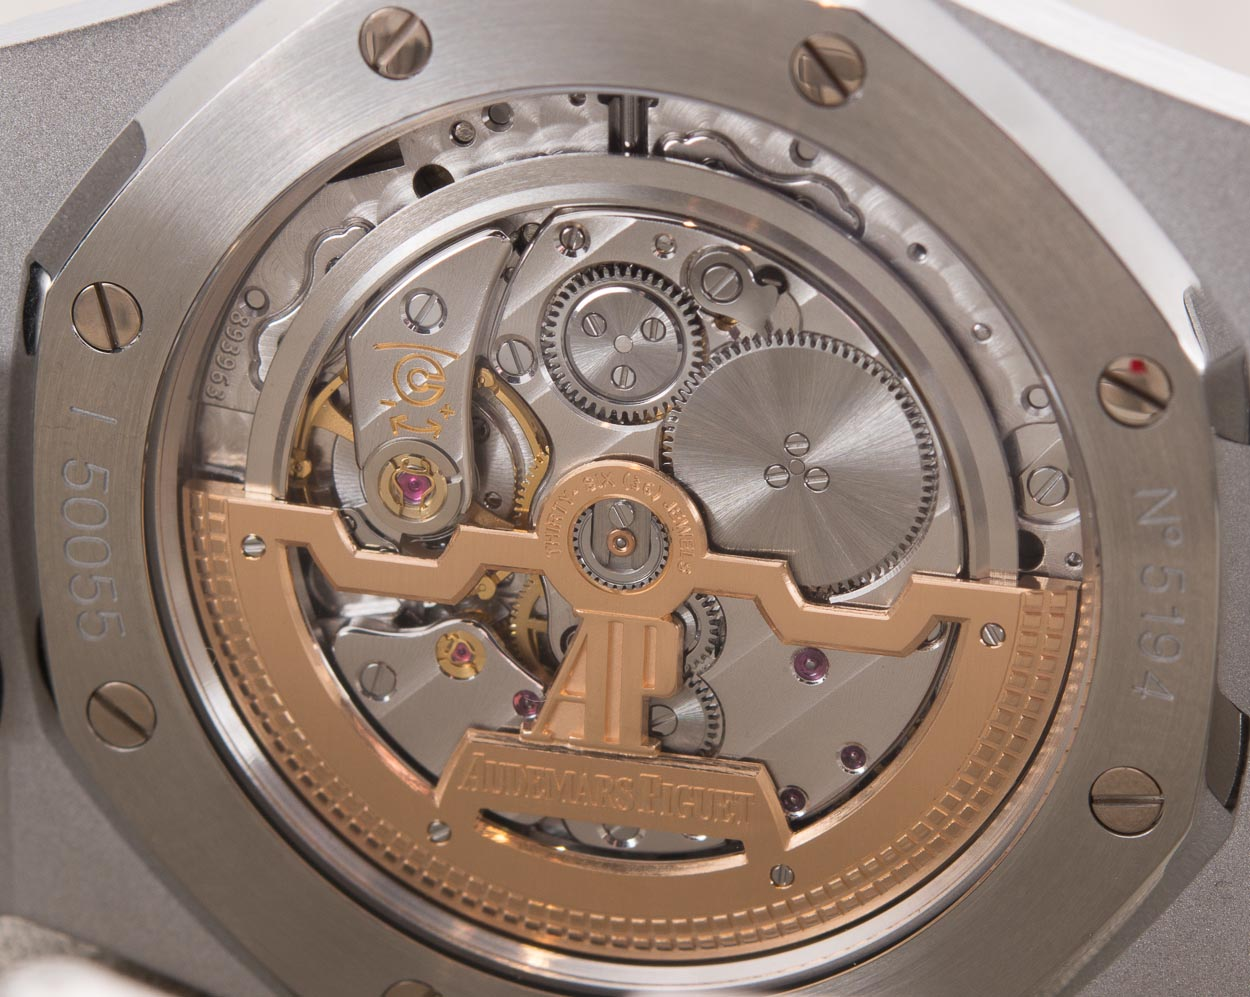 Audemars Piguet Royal Oak 15202ST - Caseback